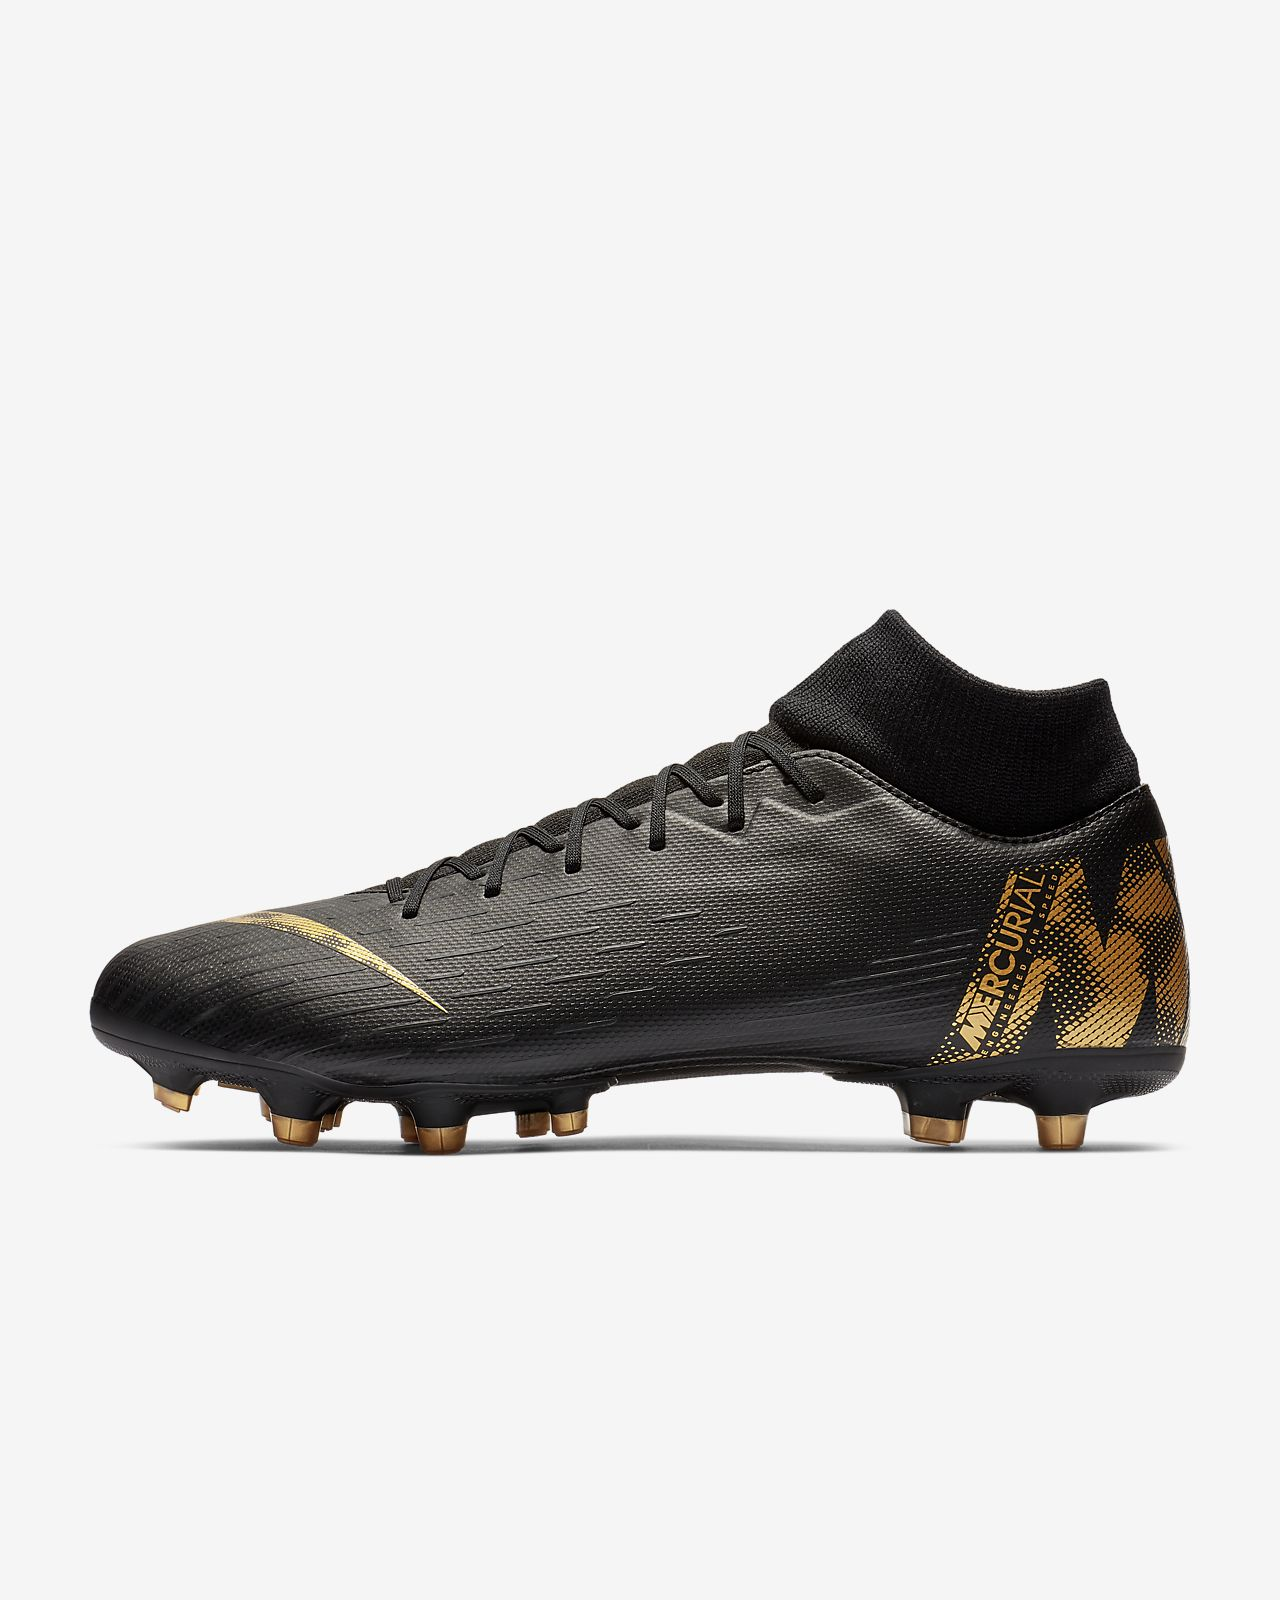 Nike Mercurial Superfly 6 Academy MG Multi-Ground Soccer Cleat. Nike.com 350e8d3da